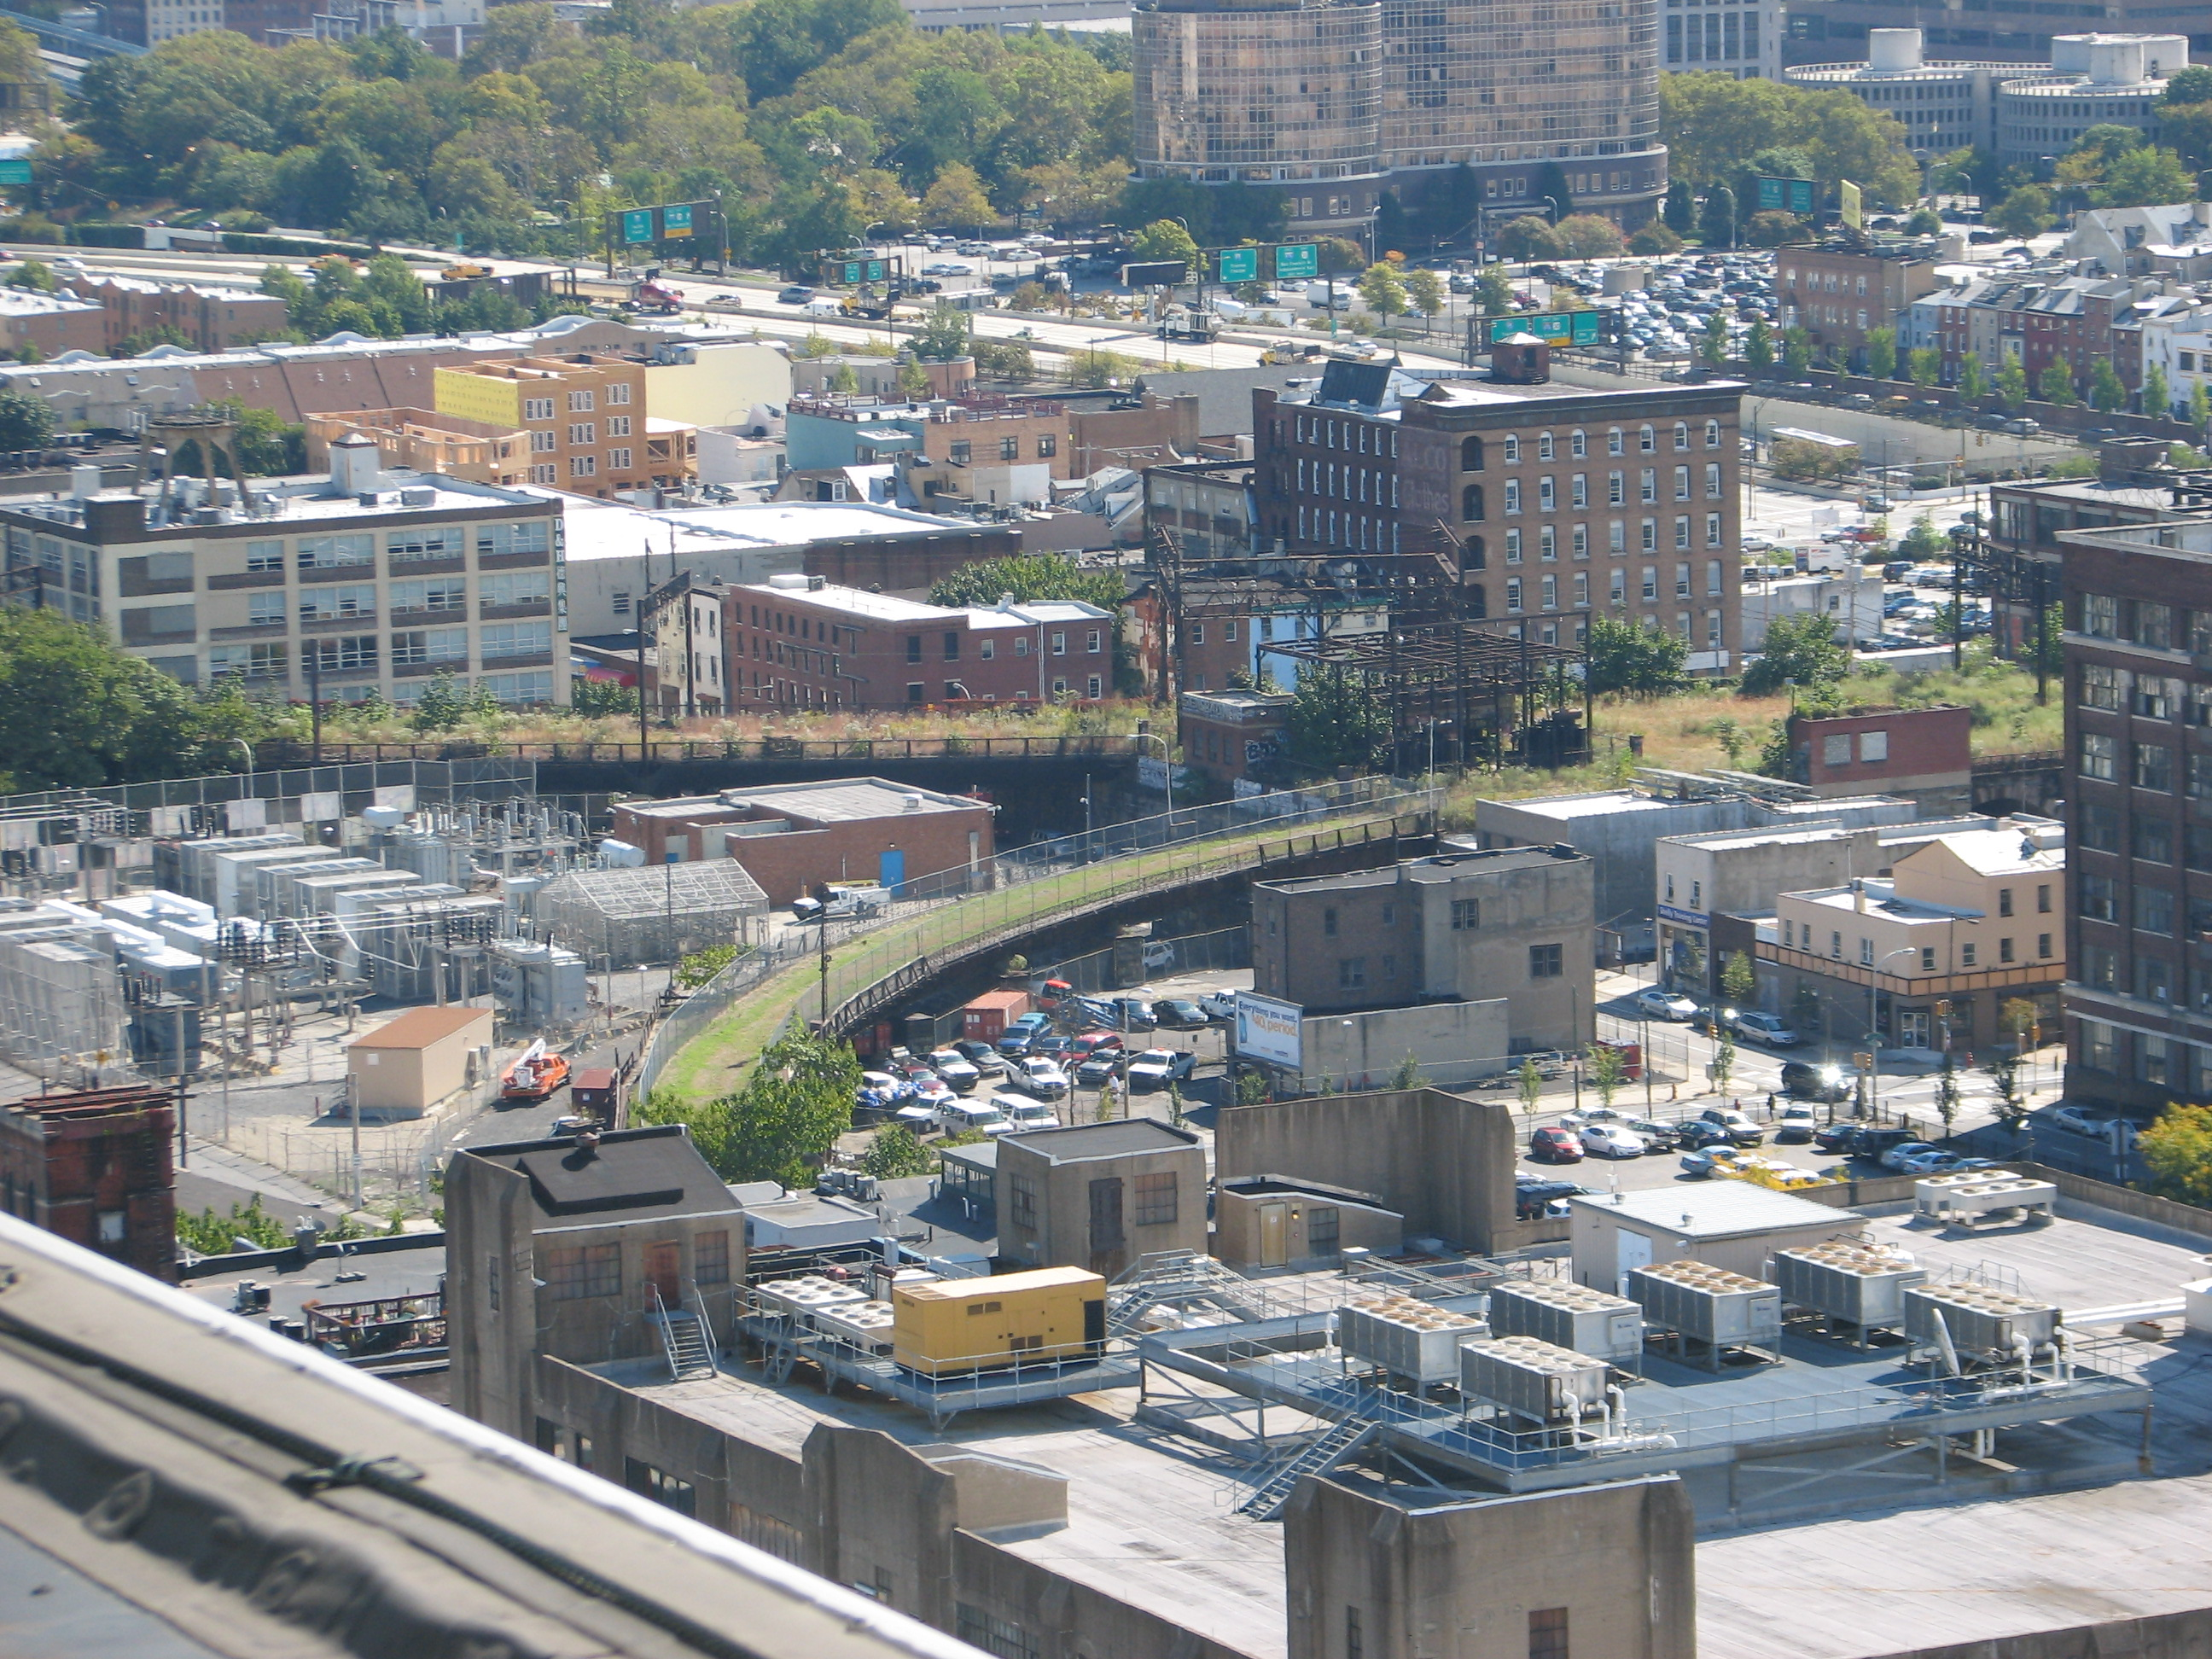 If Blatstein gets the license, he pledges to extend the Reading Viaduct - which many want to turn into an elevated park - to Broad Street. He owns a parcel of property through which the connection could be made.